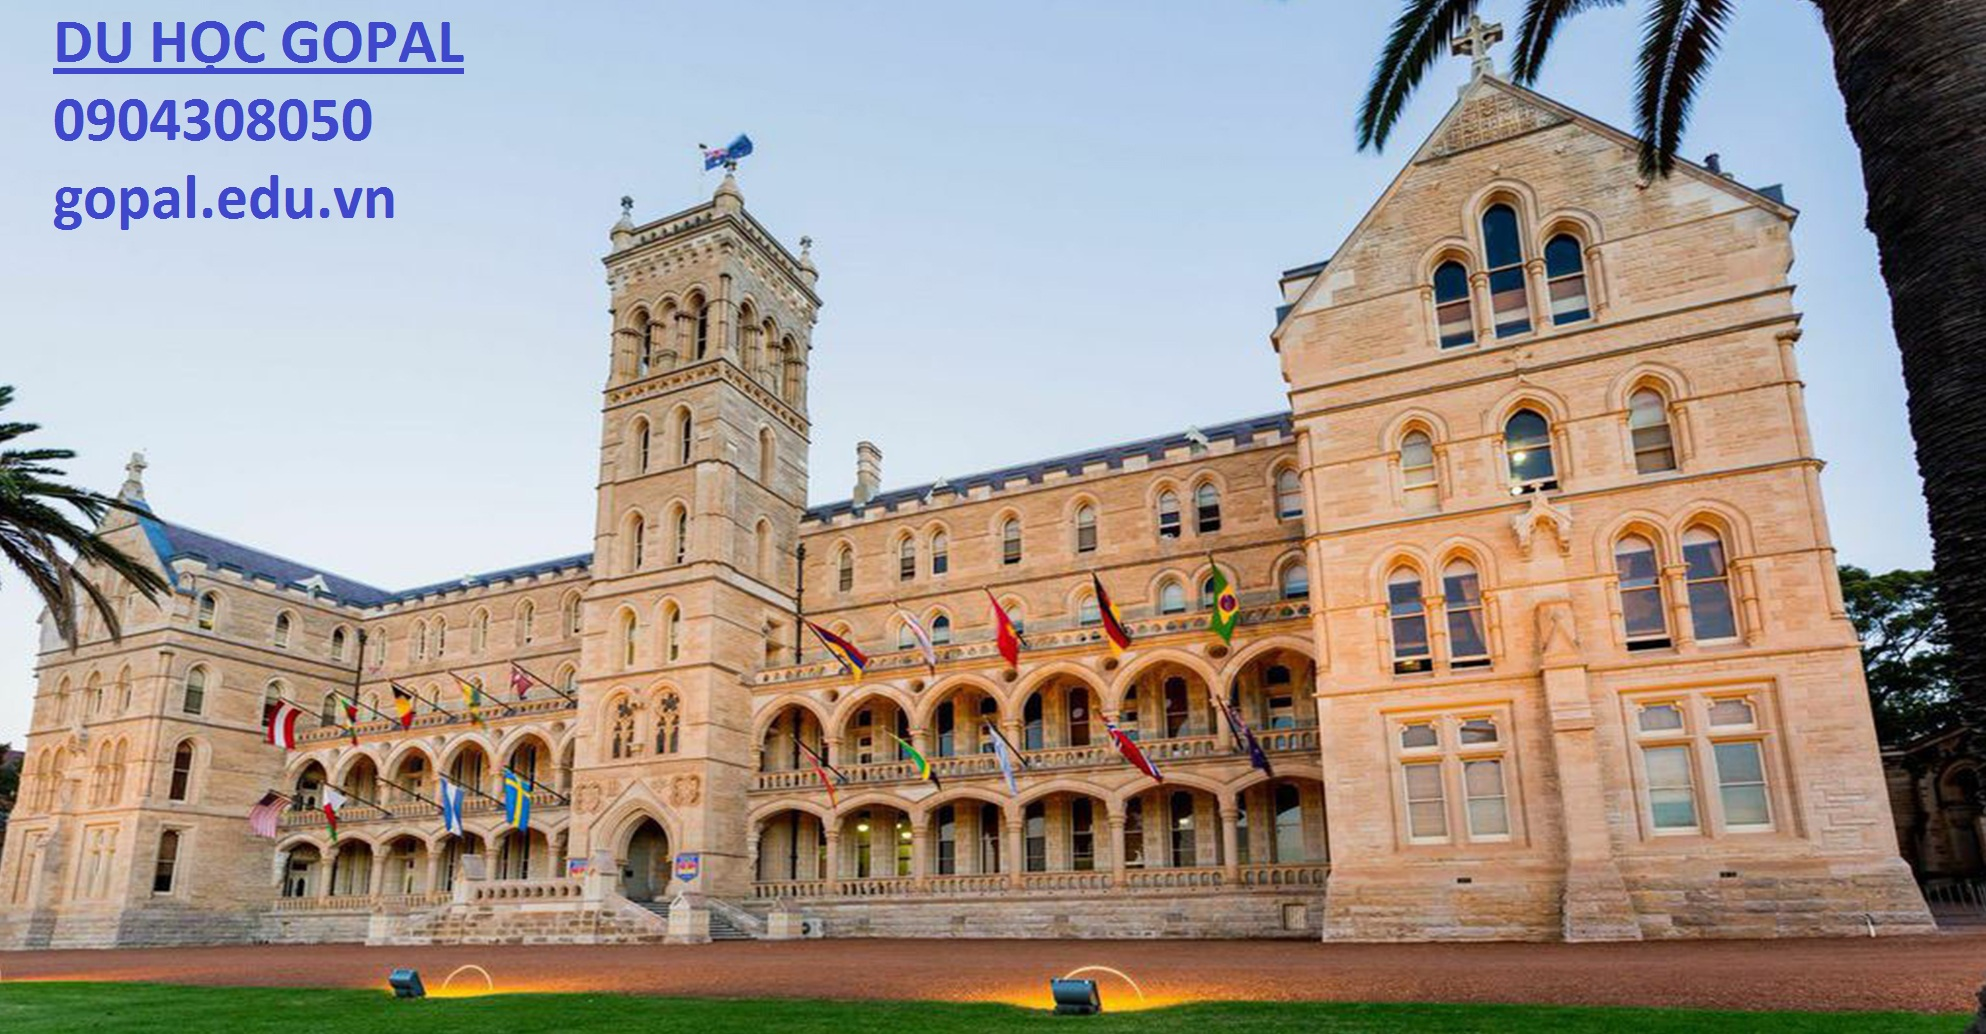 INTERNATIONAL COLLEGE OF MANAGEMENT SYDNEY (IMCS)